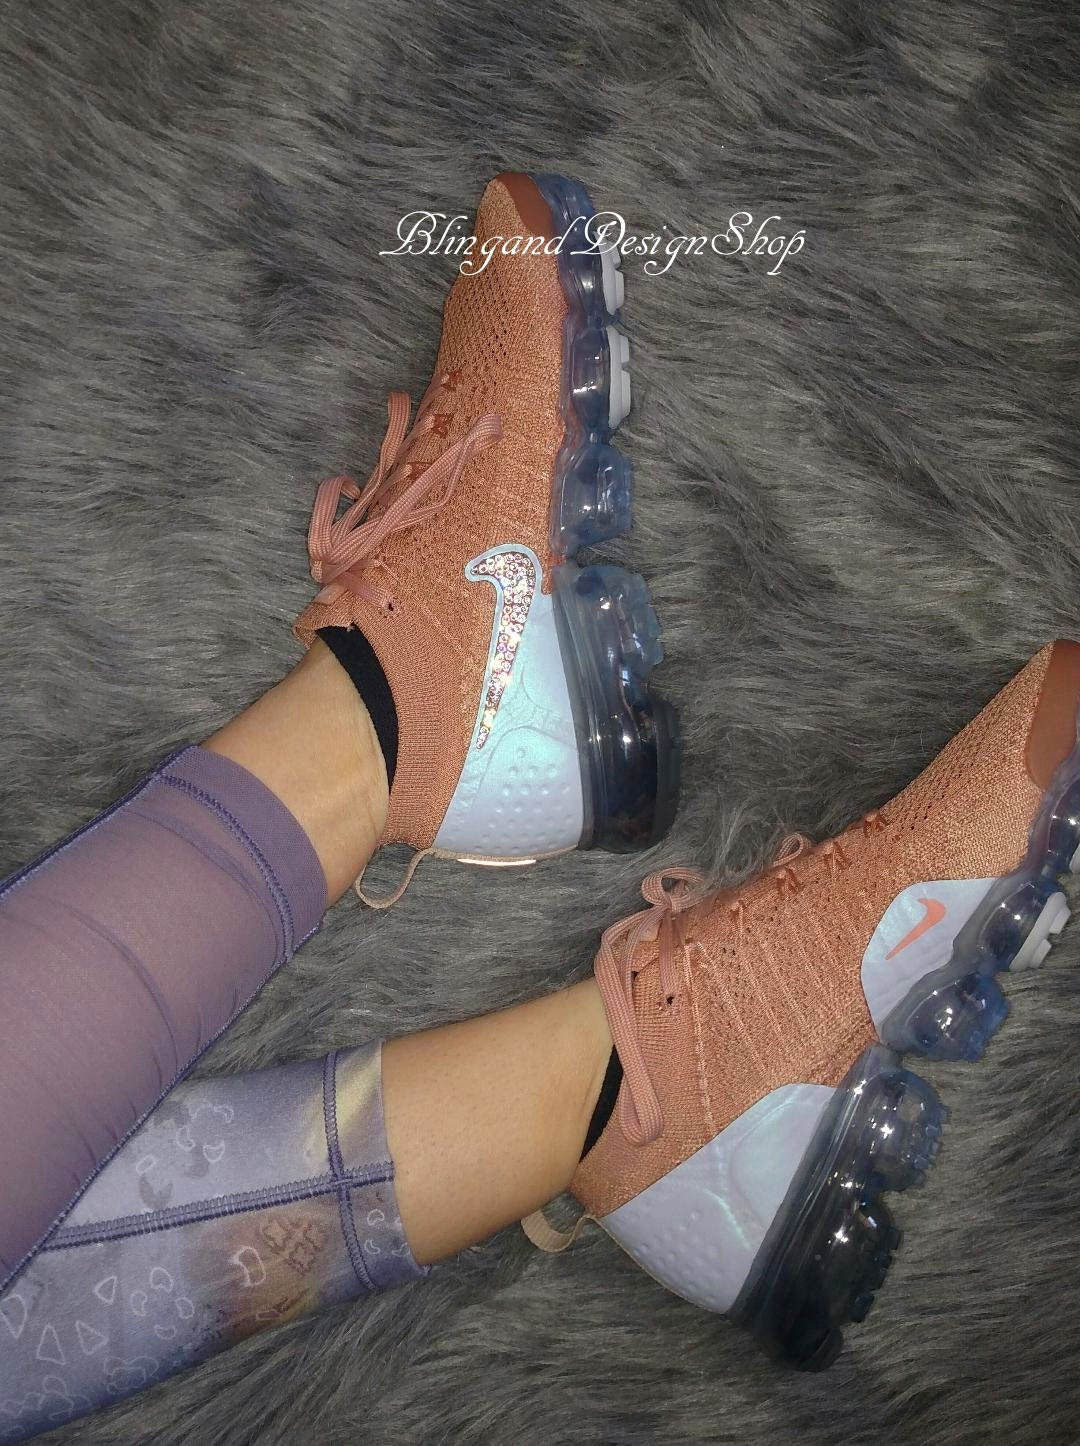 f5854c62ee6fa Swarovski Nike Shoes Air Vapormax Flyknit 2 Womens Shoes Customized ...